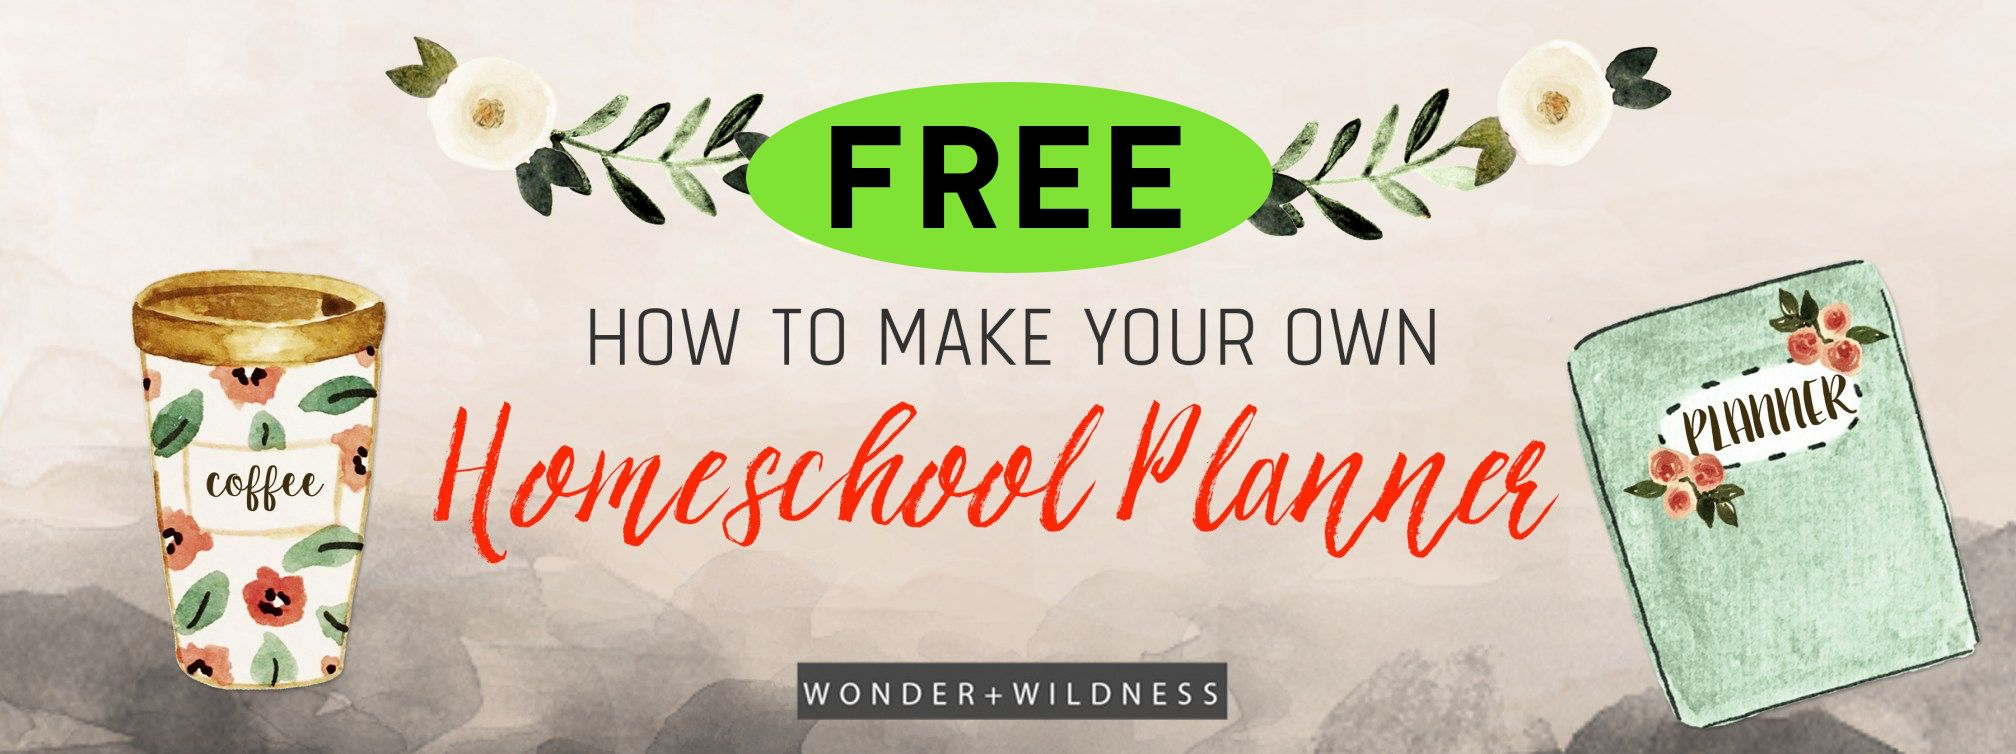 FREE Homeschool Planner Printables!